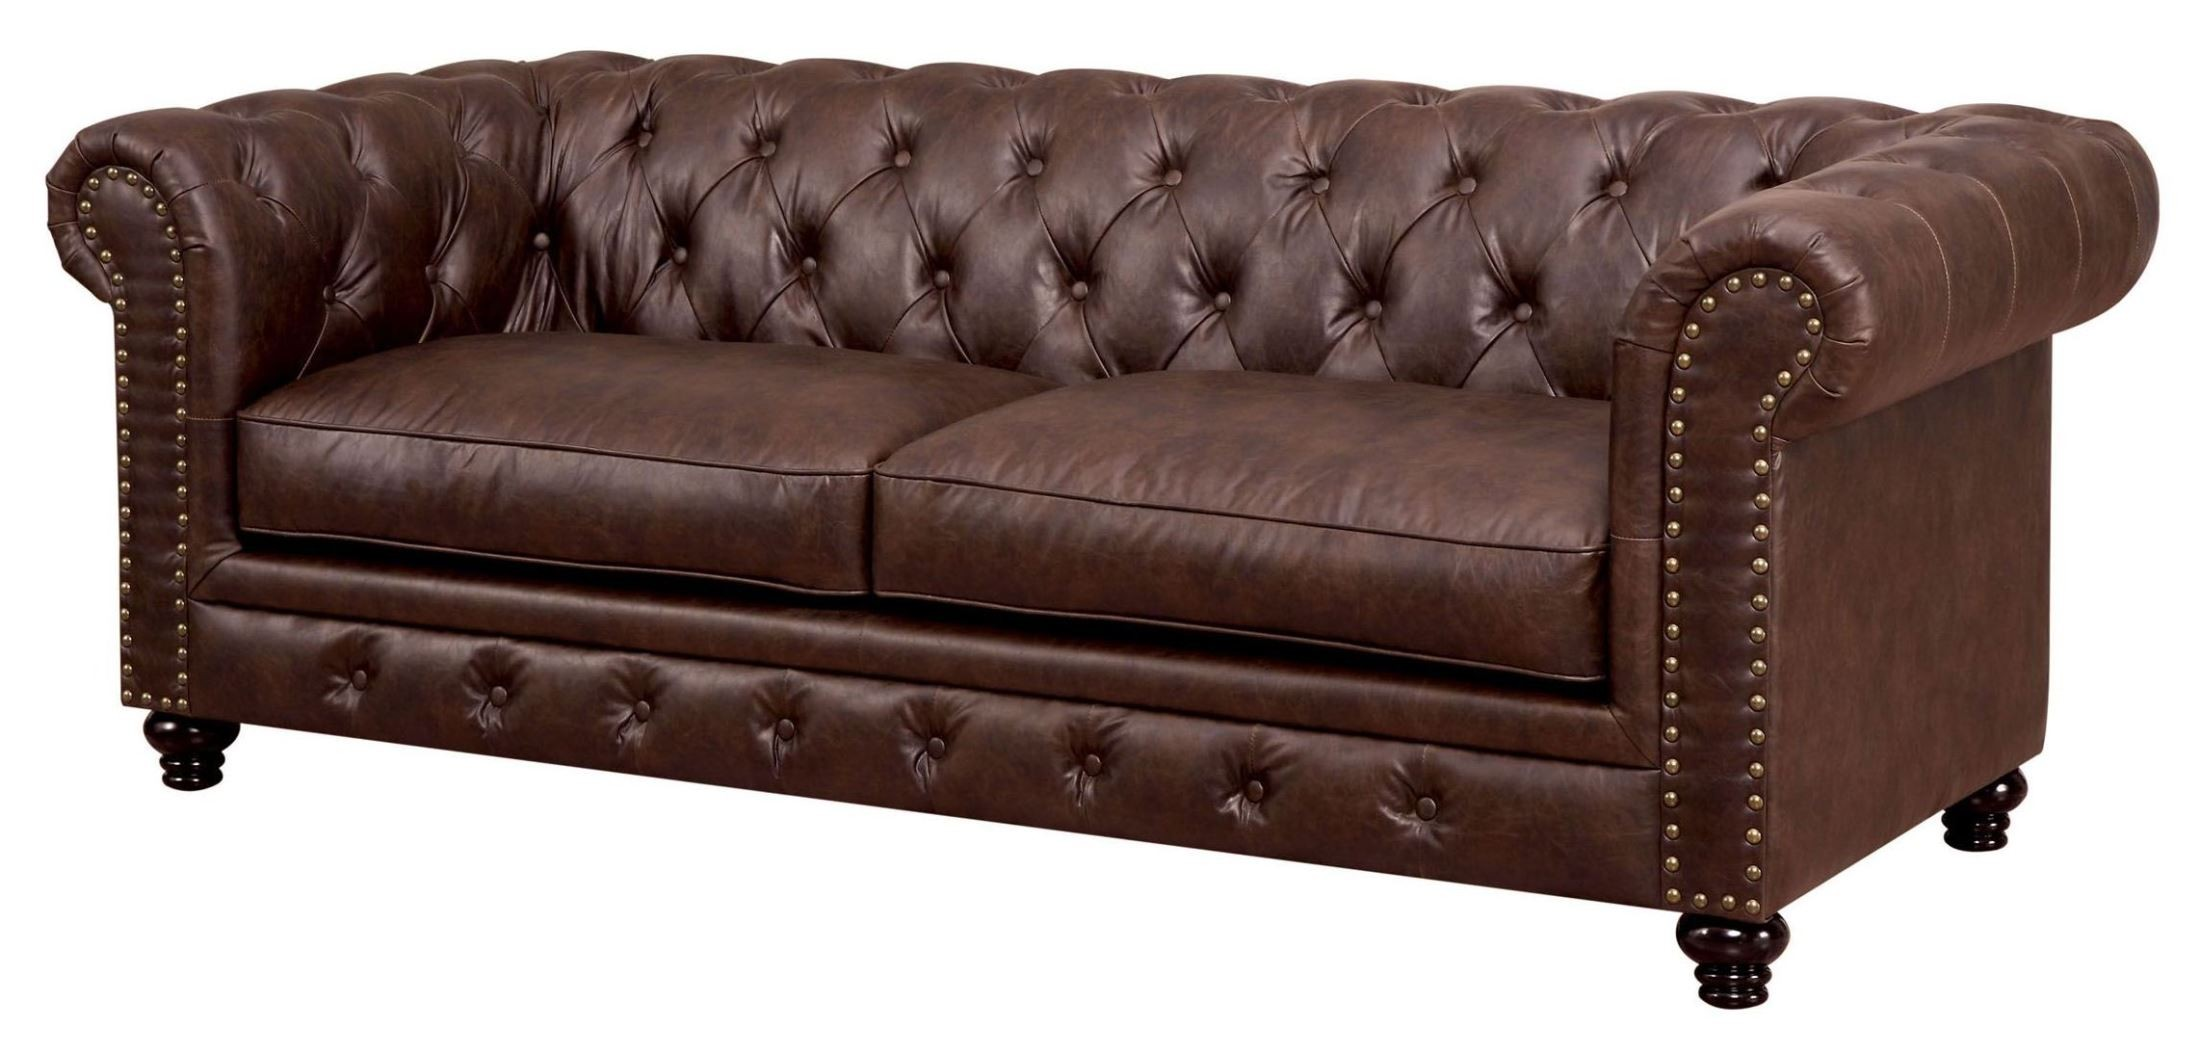 leatherette sofa studio apartment sofas stanford brown from furniture of america